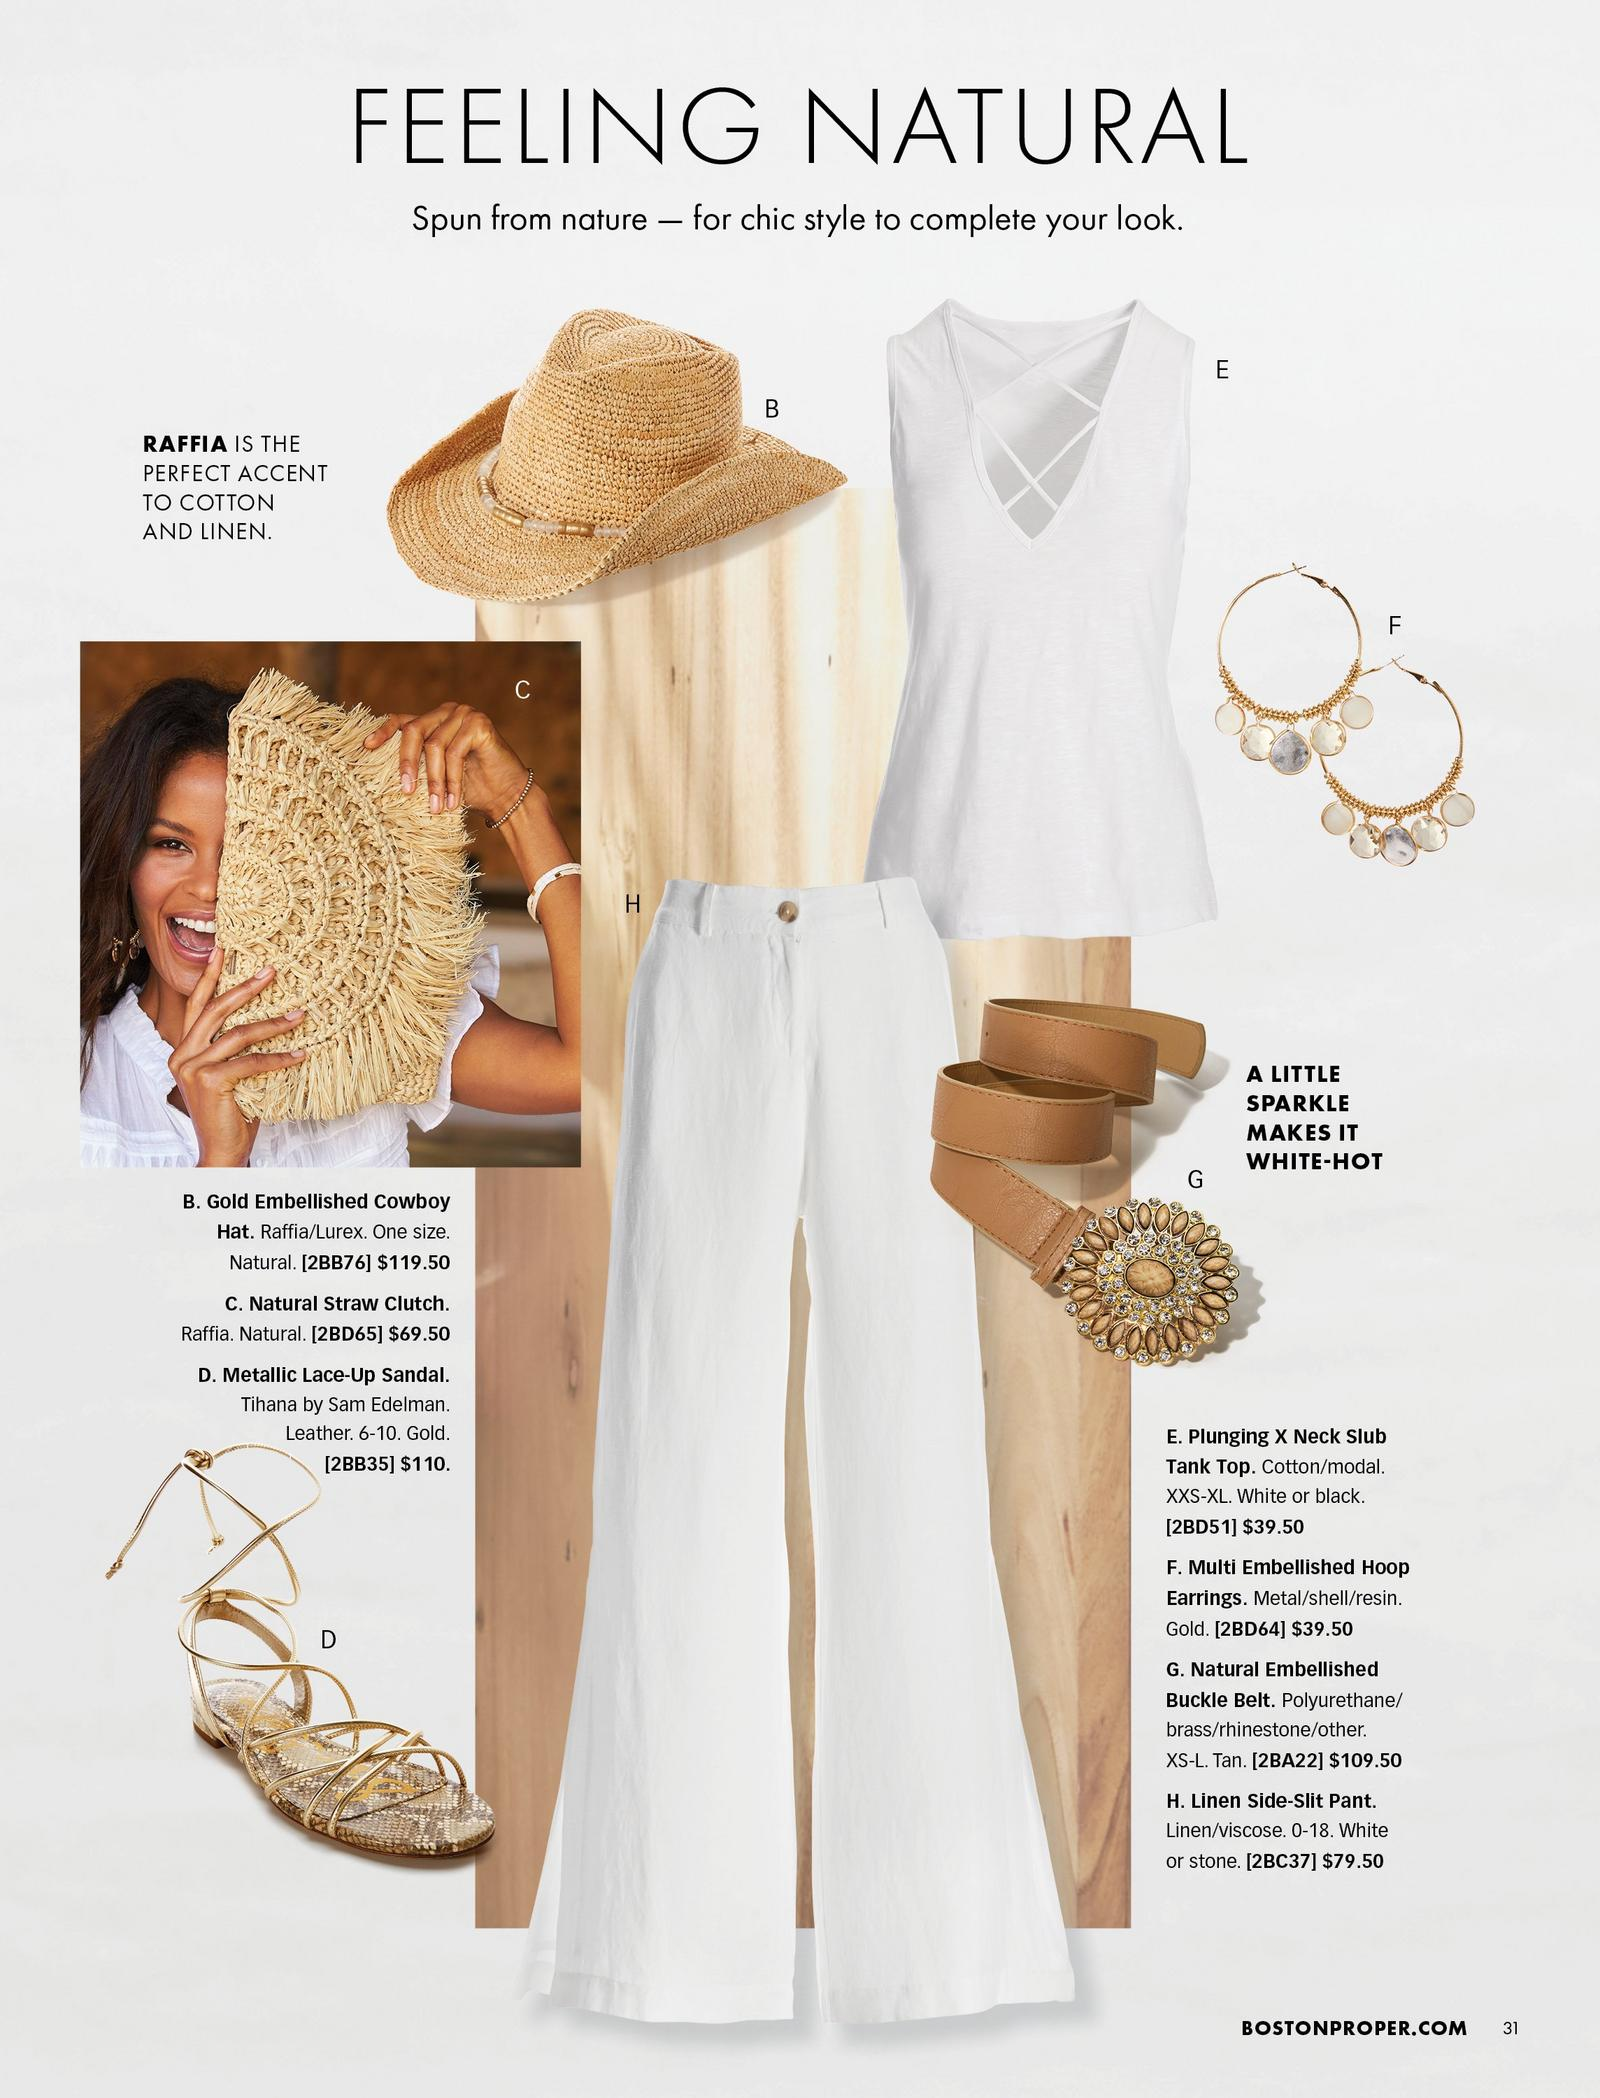 individual items shown: white x-neck tank top, gold embellished cowboy hat, white linen side-slit palazzo pants, gold embellished brown belt, gold hoop earrings, gold lace-up sandals, and straw clutch.